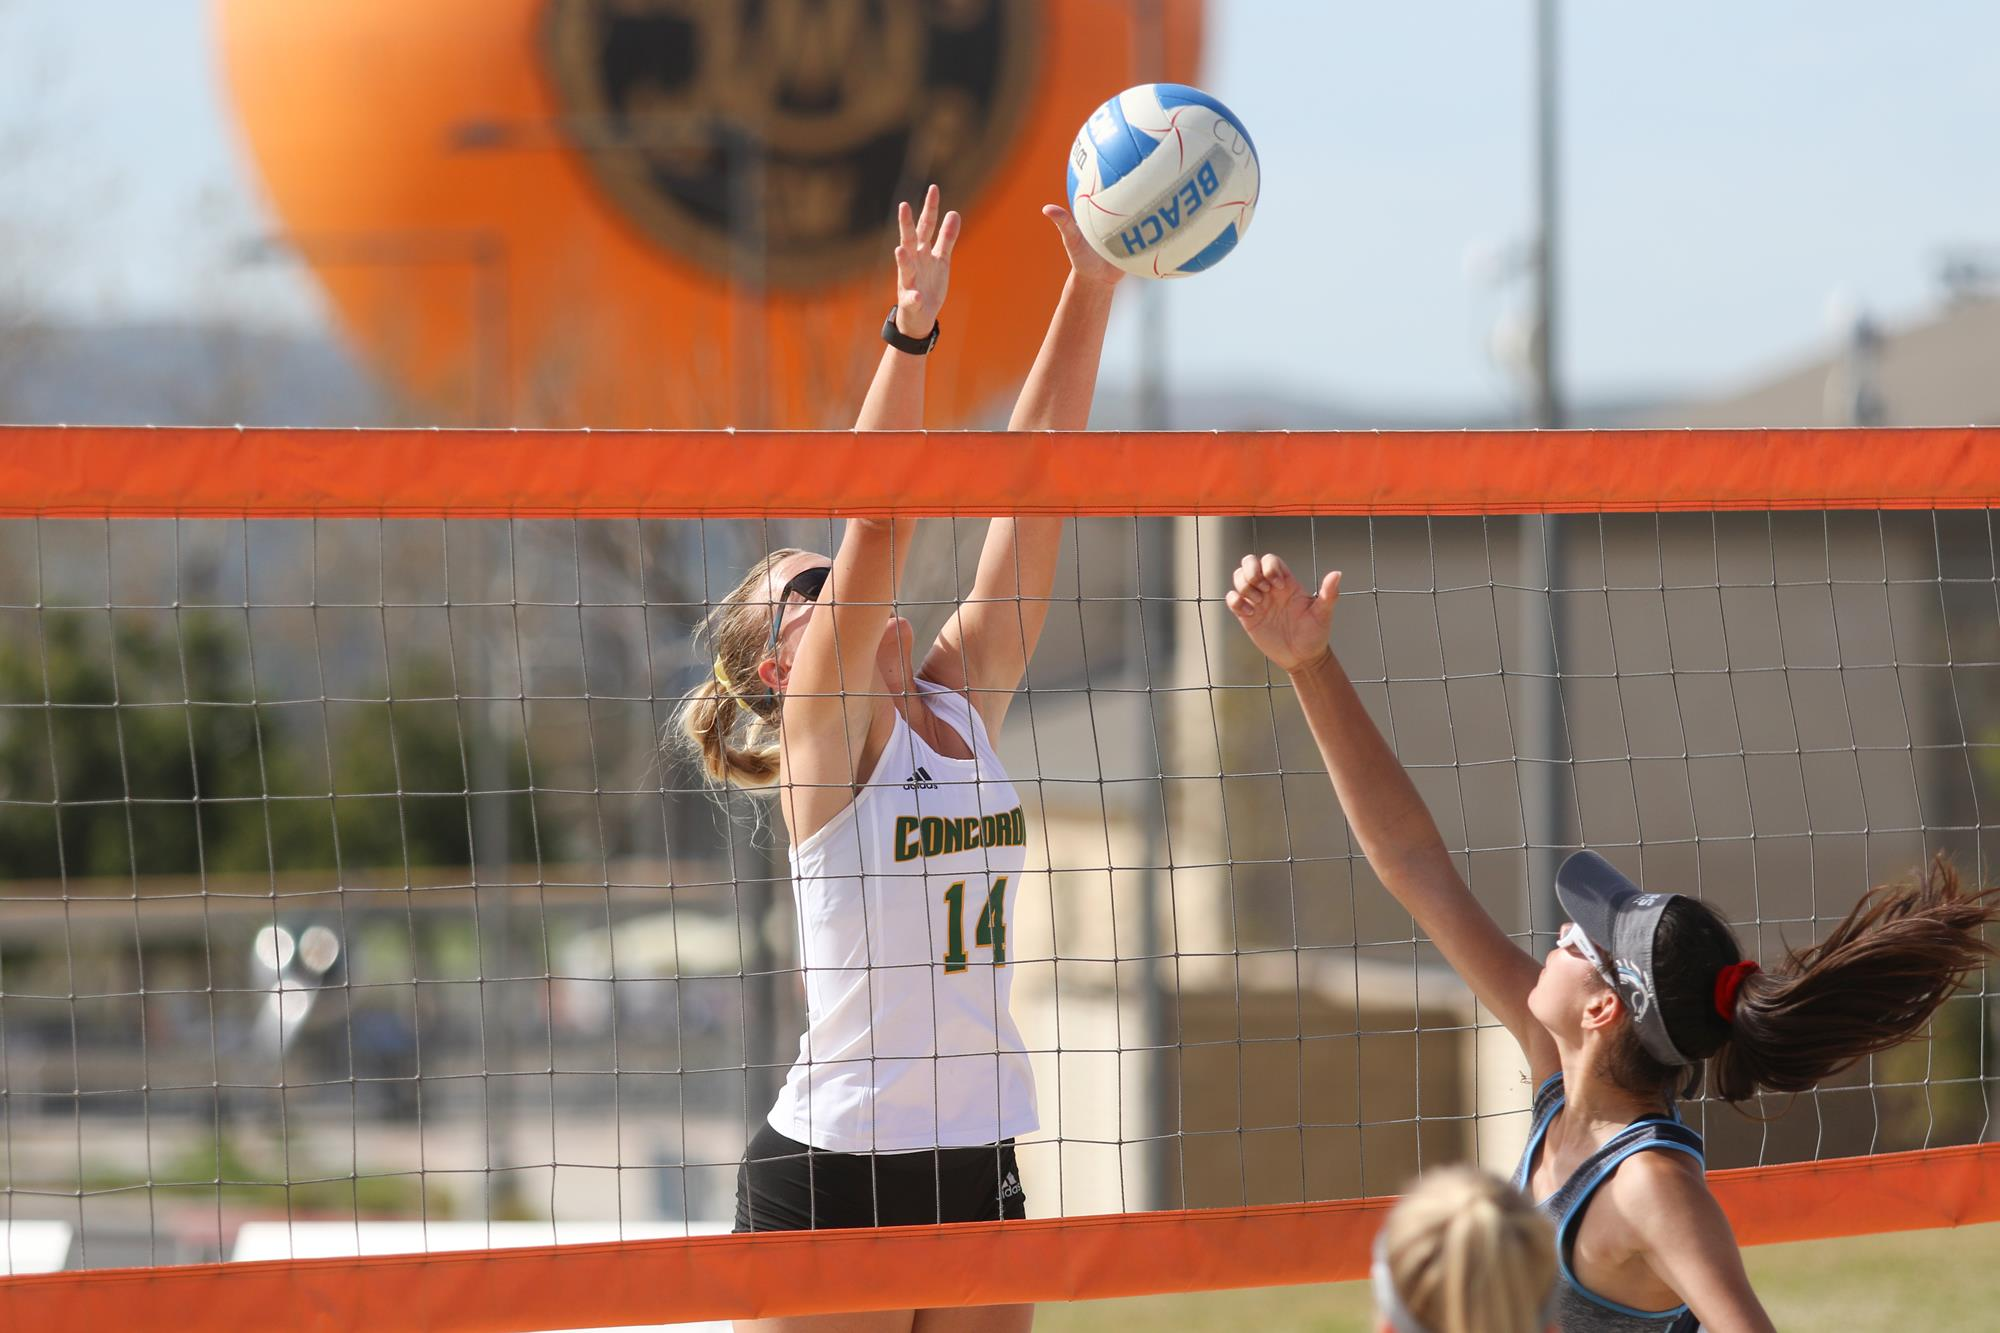 Renee Phillips S Women S Volleyball Recruiting Profile